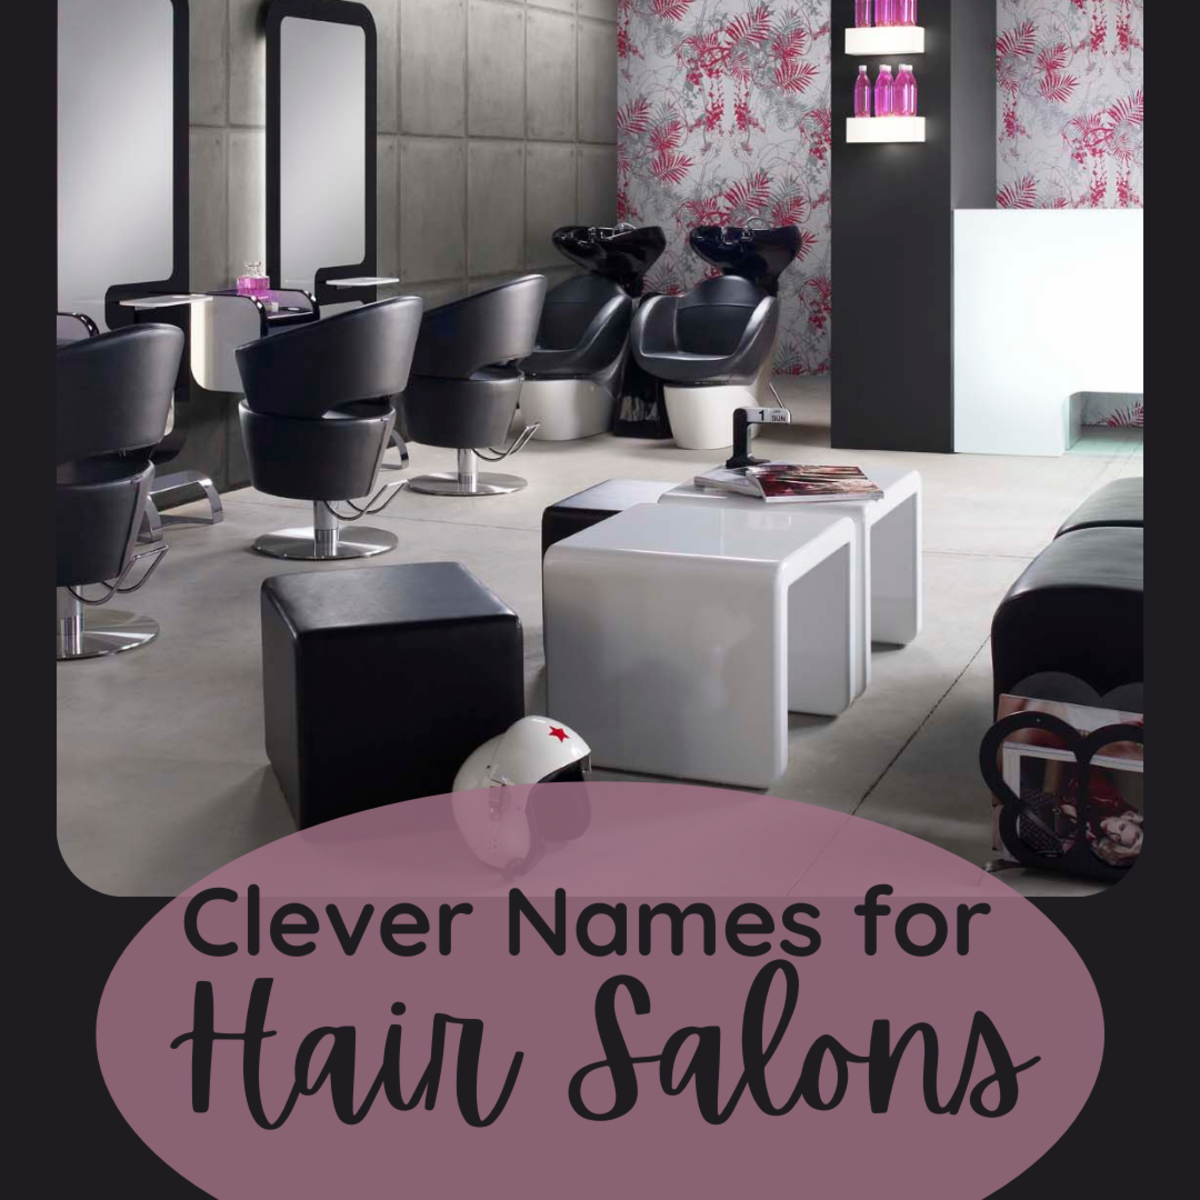 Look no further; here, you'll find 150+ ideas to help you name your new hair salon.